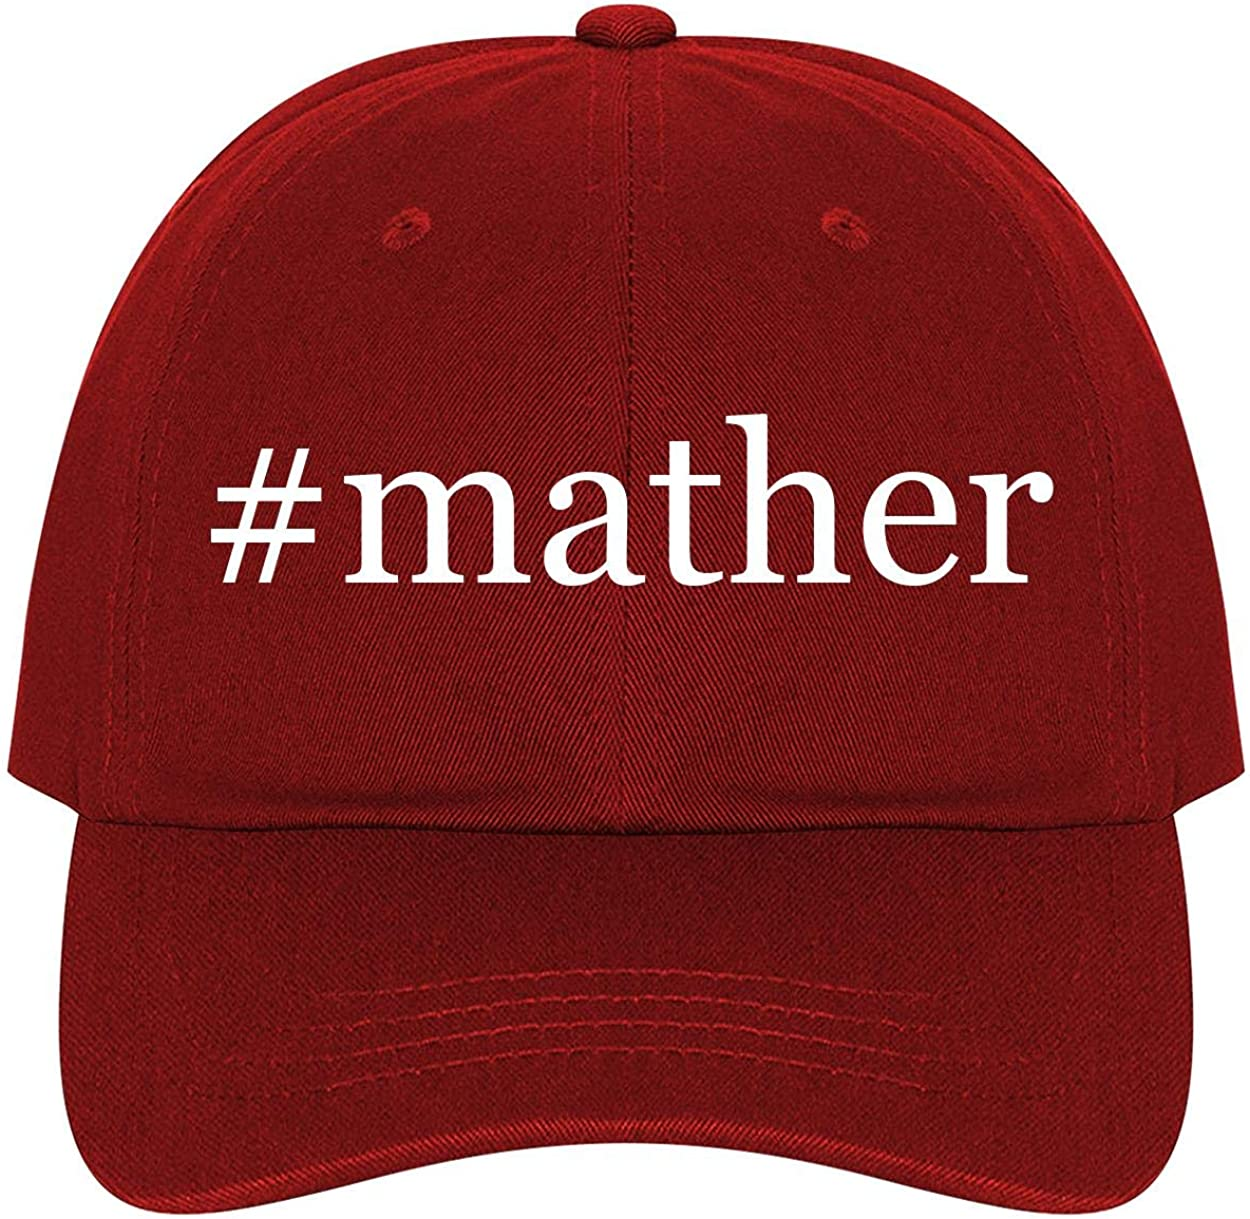 A Nice Comfortable Adjustable Hashtag Dad Hat Cap The Town Butler #Mather